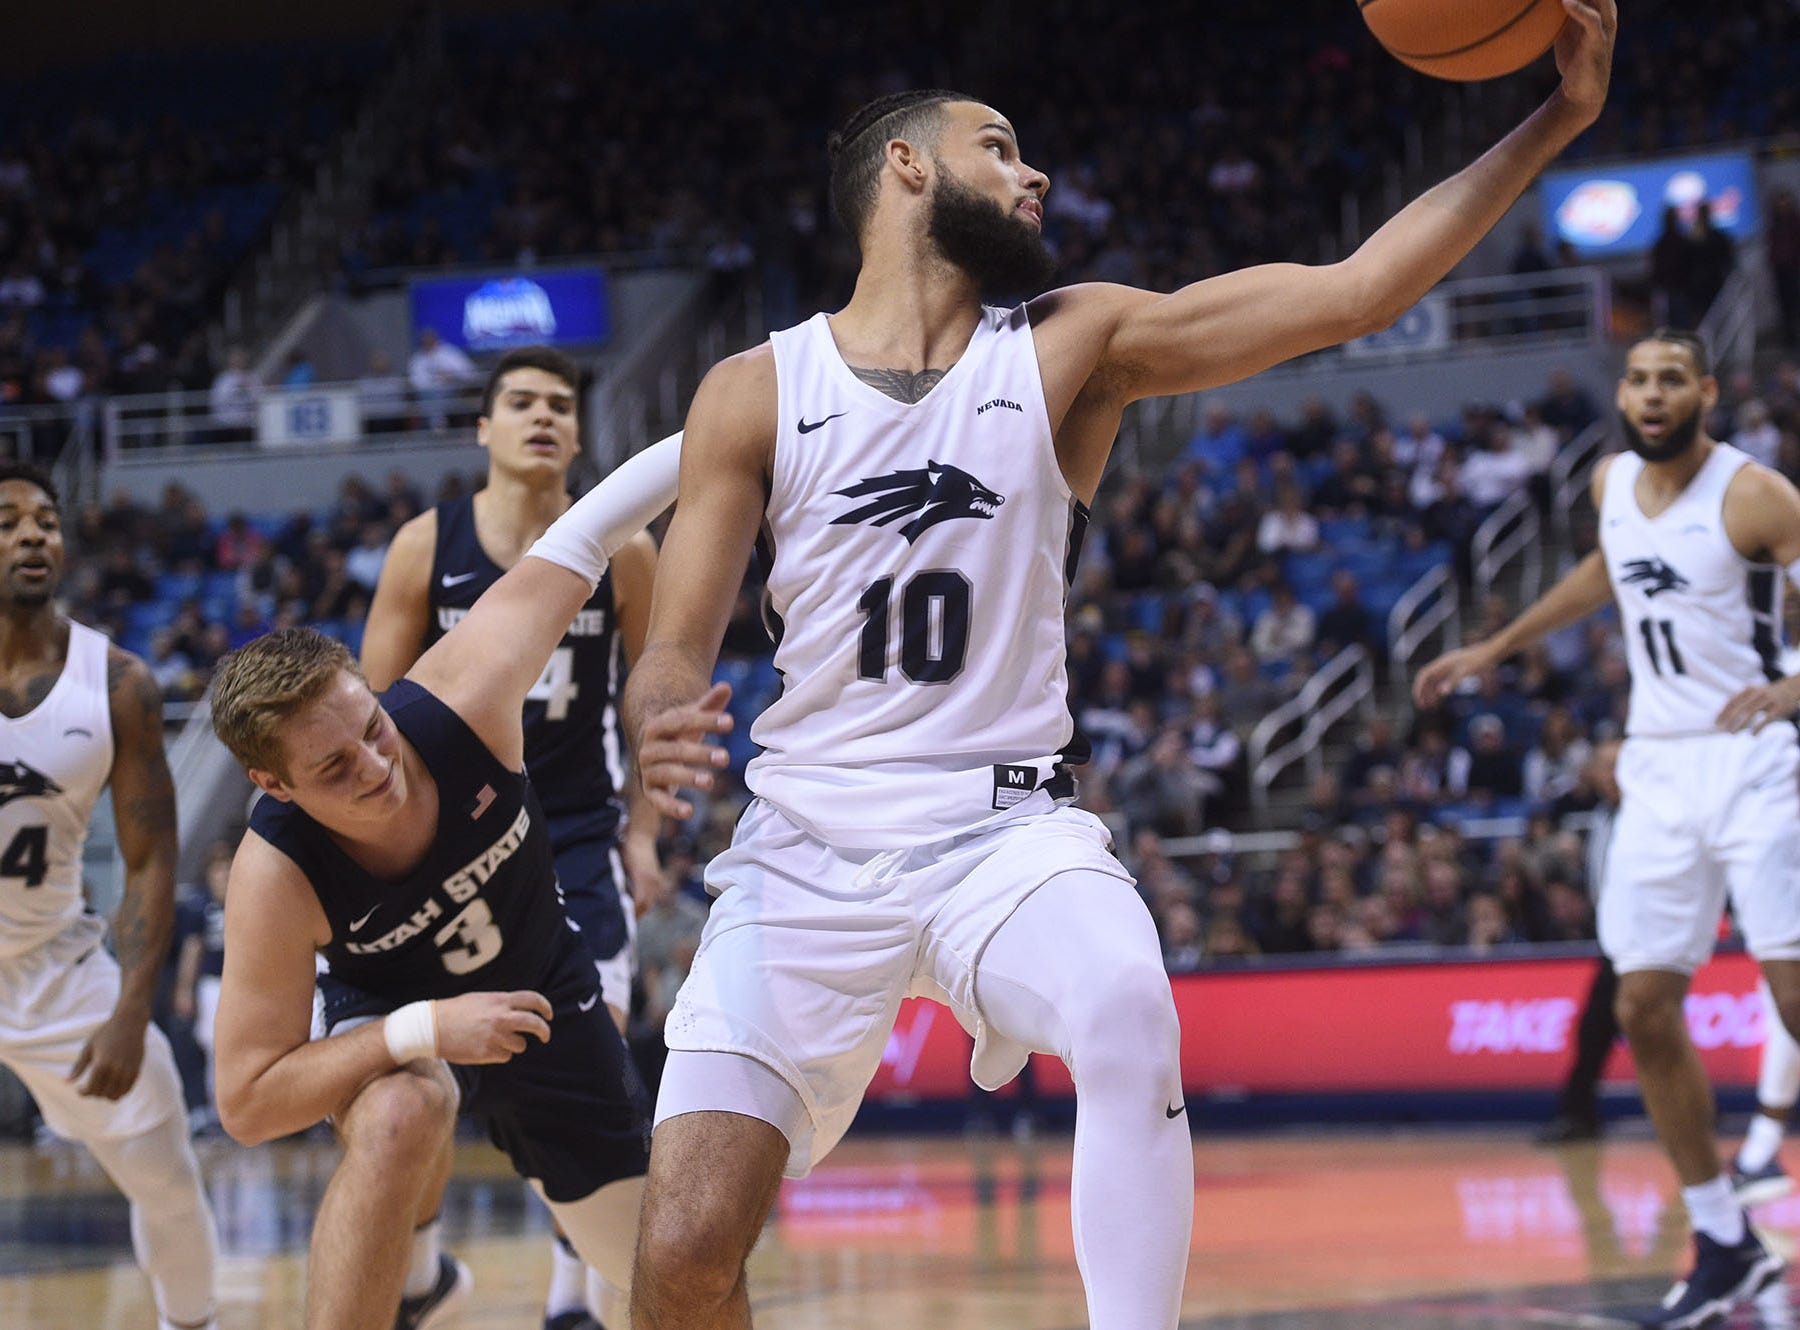 Nevada takes on Utah State during their basketball game at Lawlor Events Center in Reno on Jan. 13, 2018.